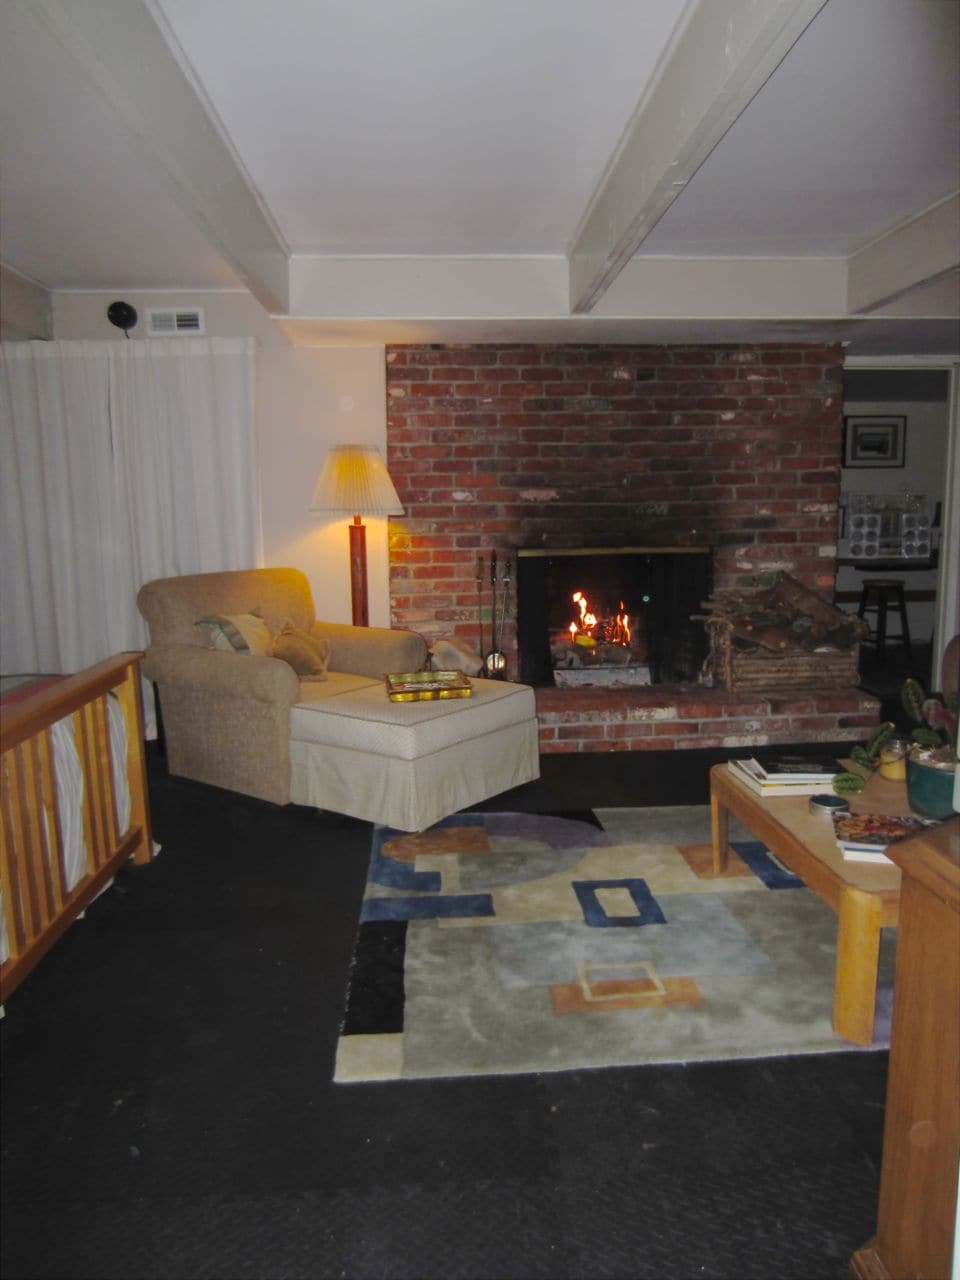 This is the view from the patio looking in to the fireplace and comfortable chair and ottoman